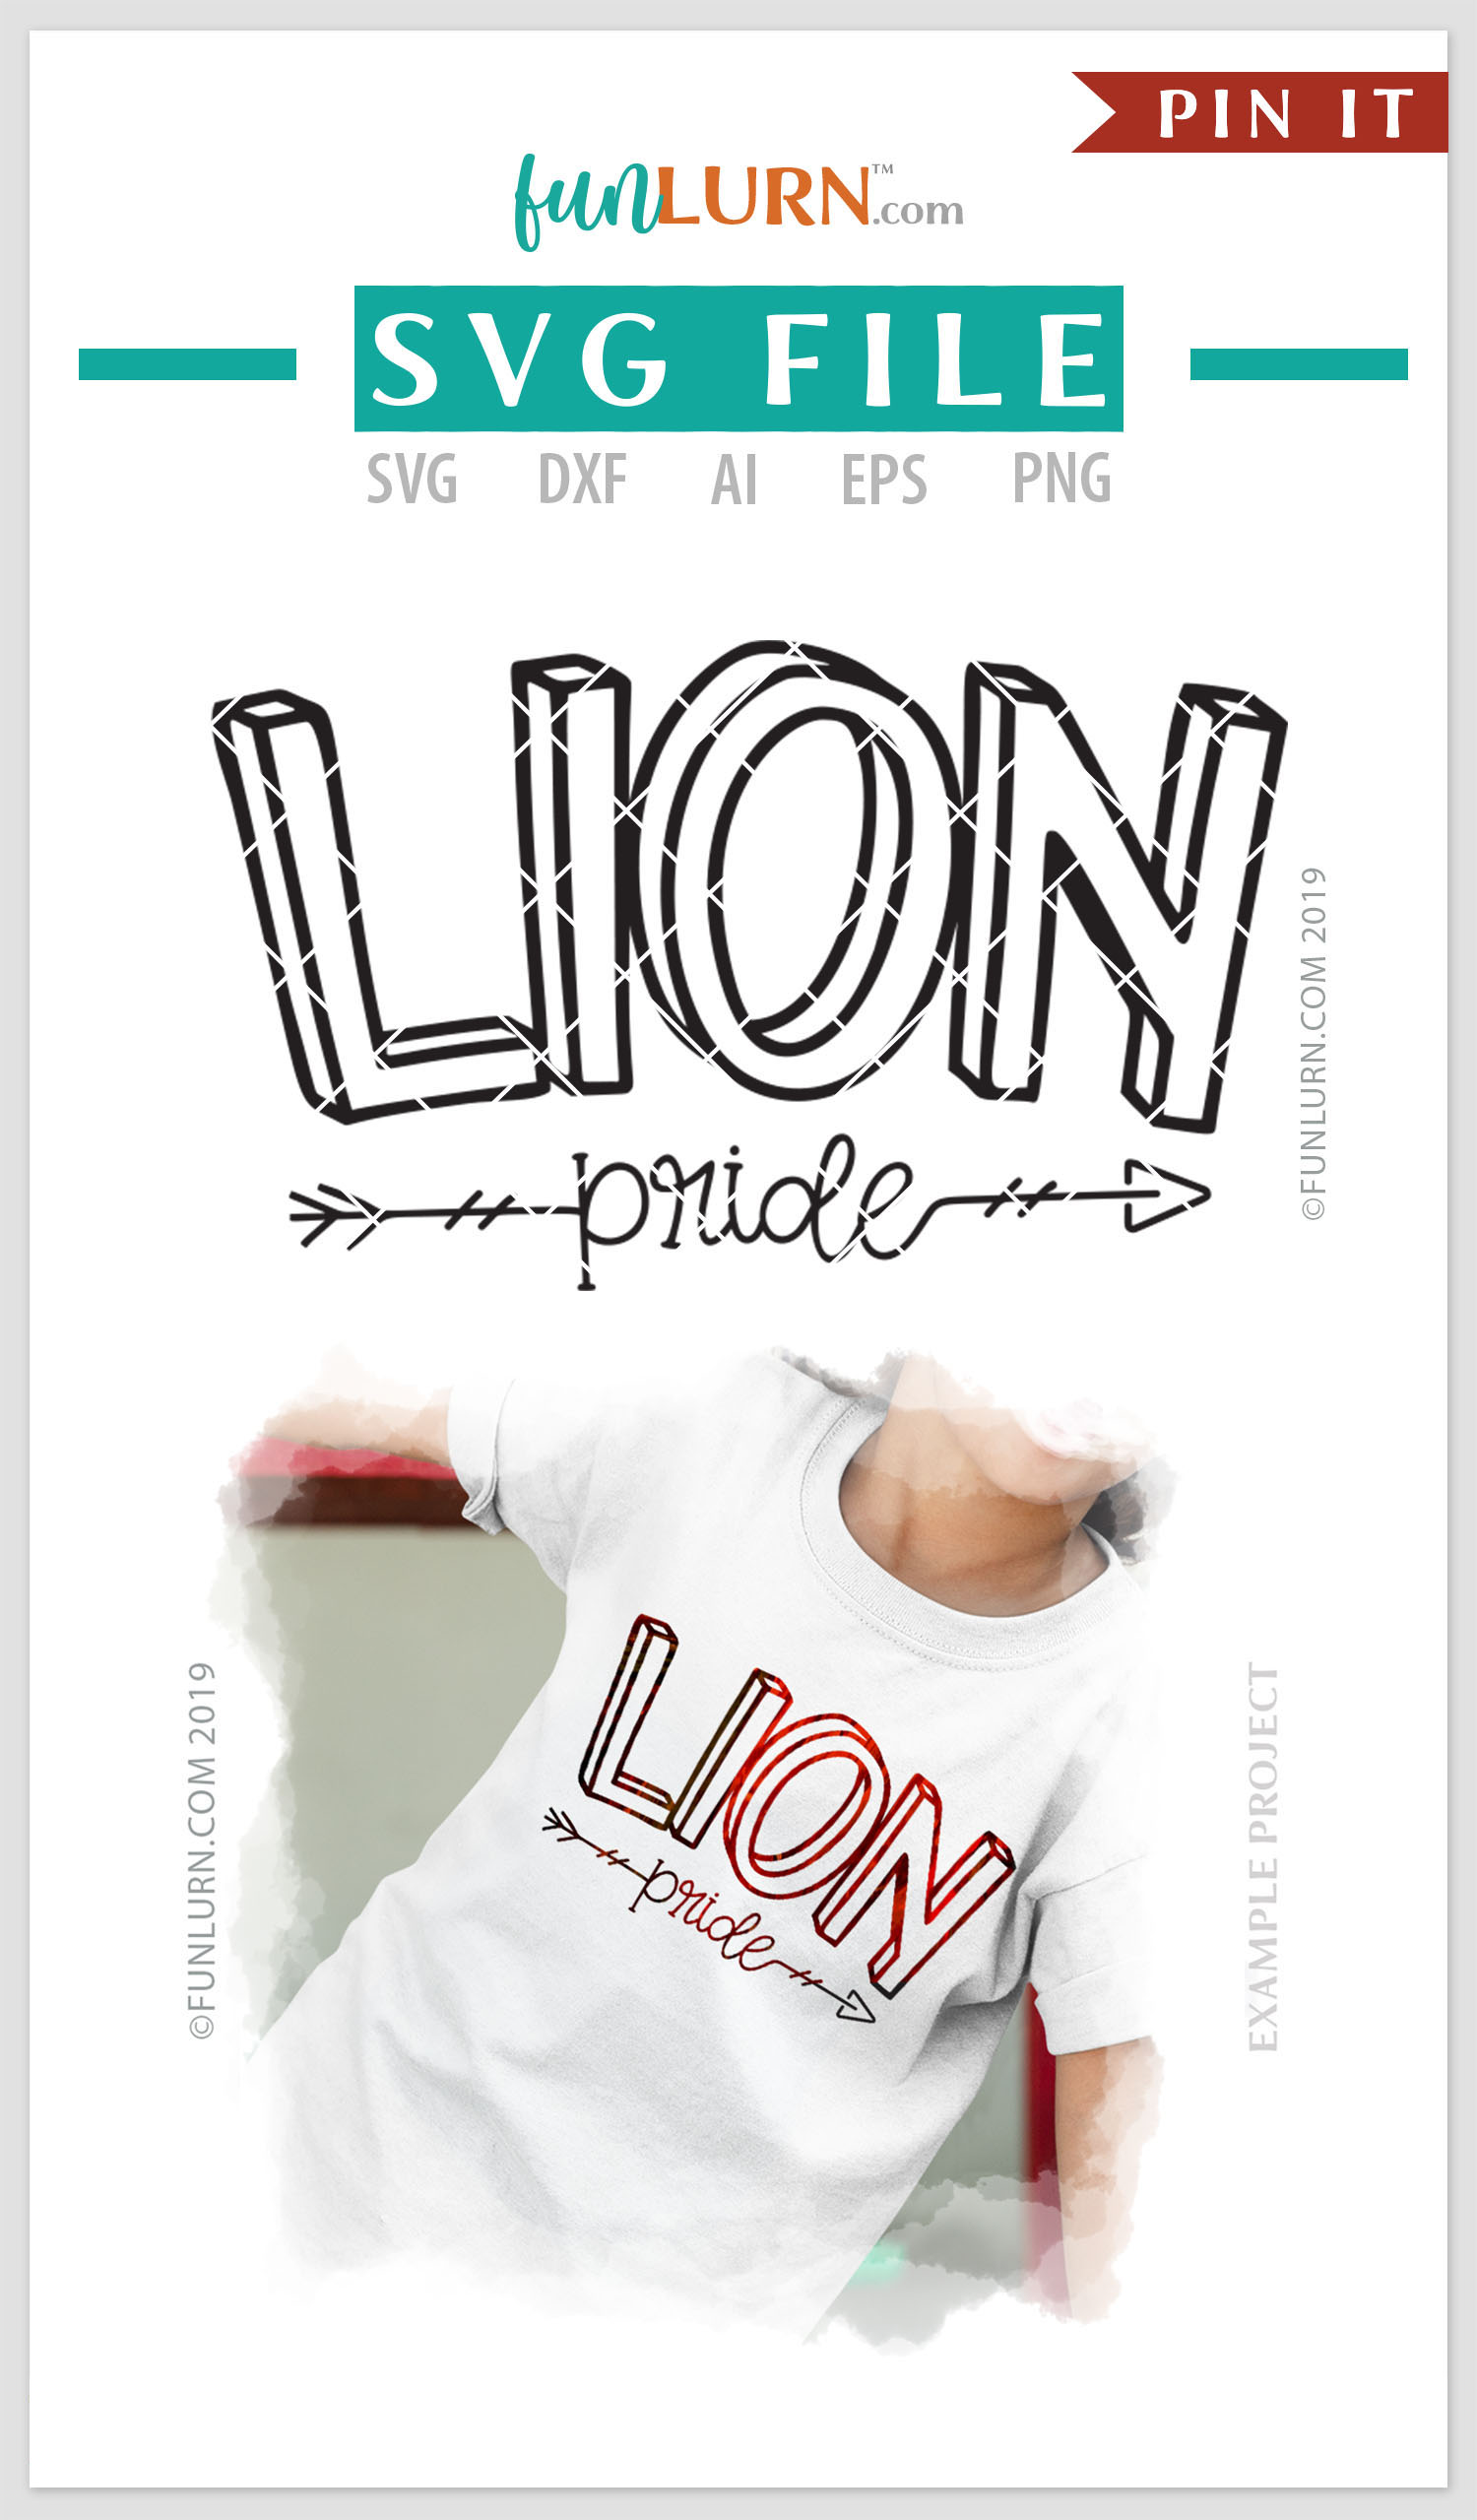 Lion Pride Team SVG Cut File example image 4